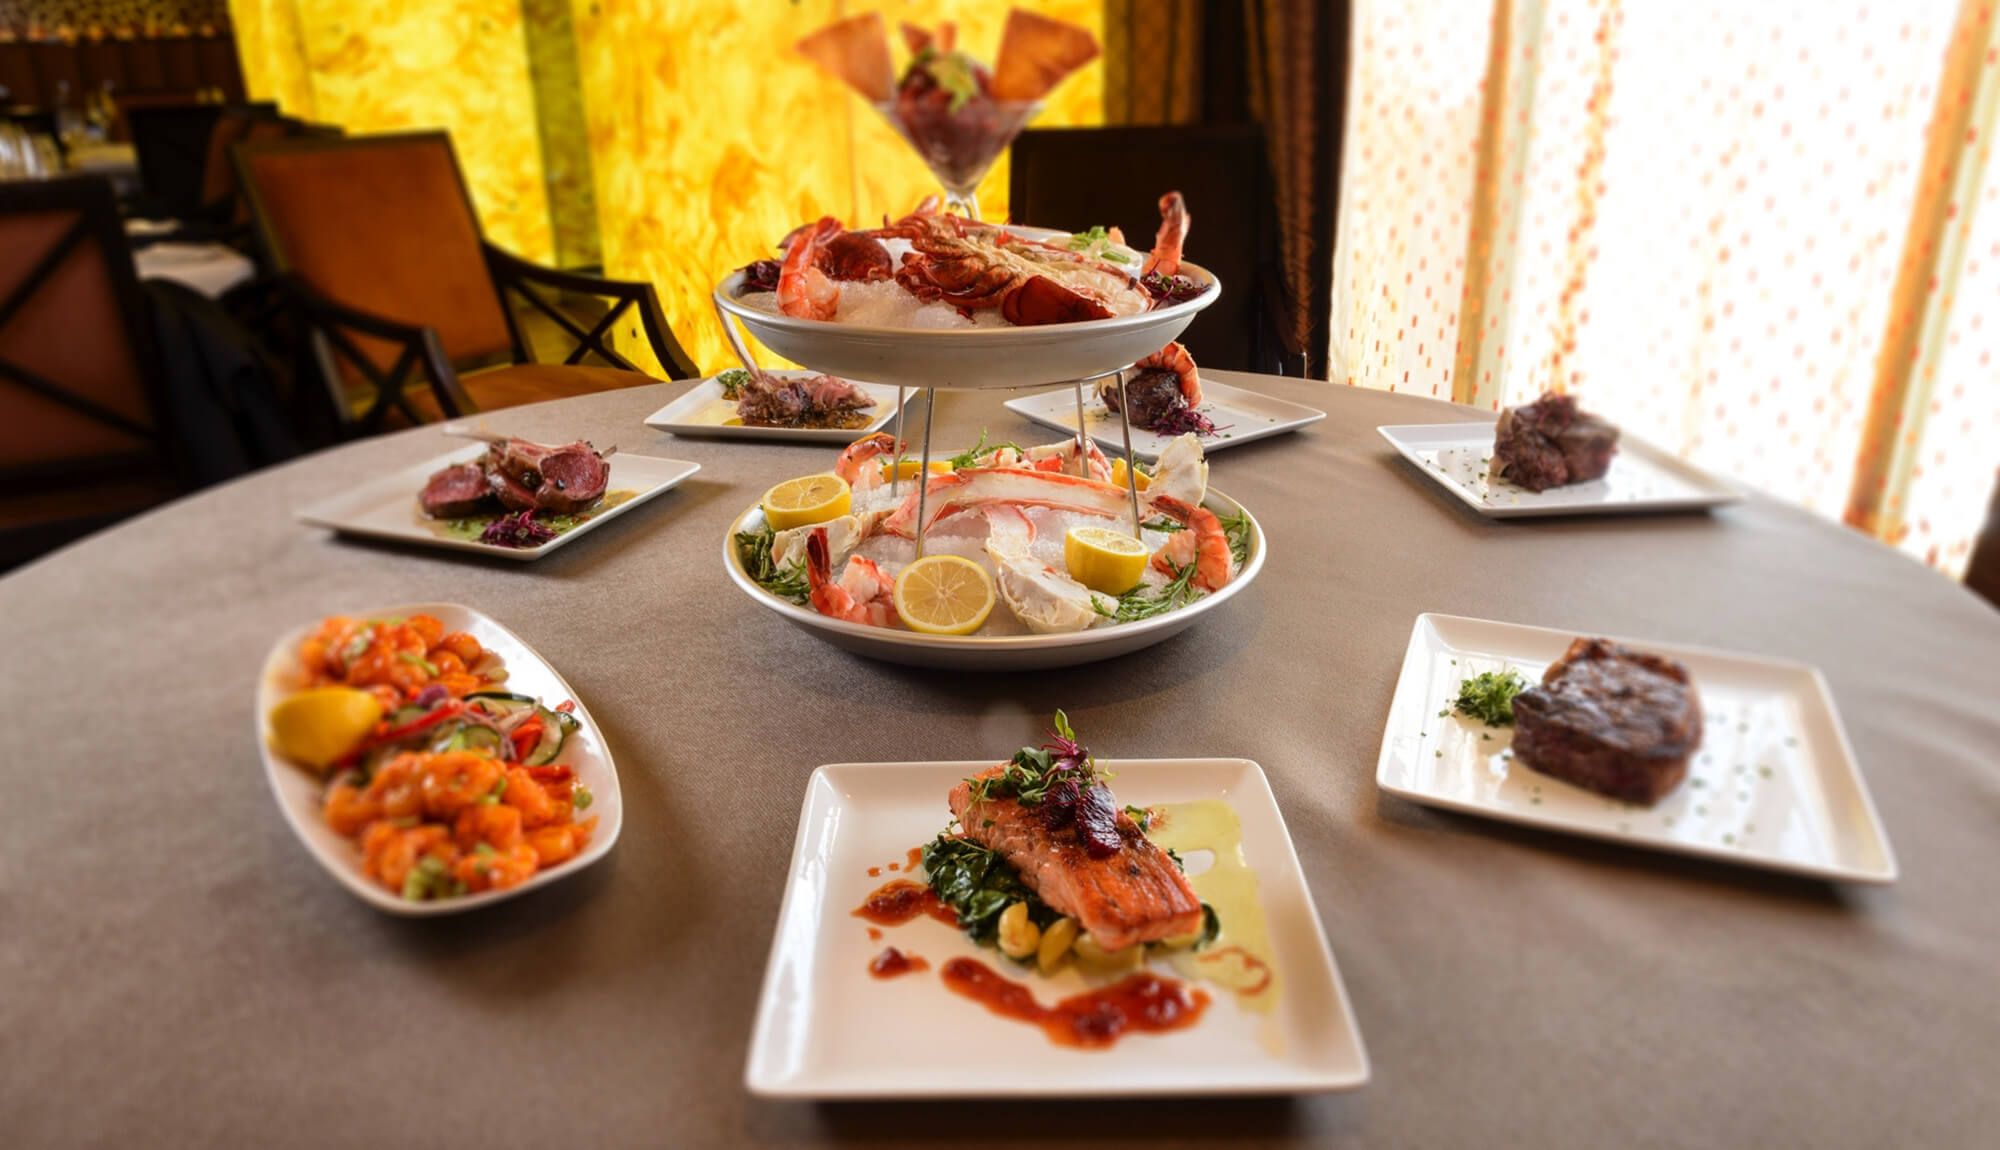 Steak and seafood selections on display | Westgate Park City Resort & Spa